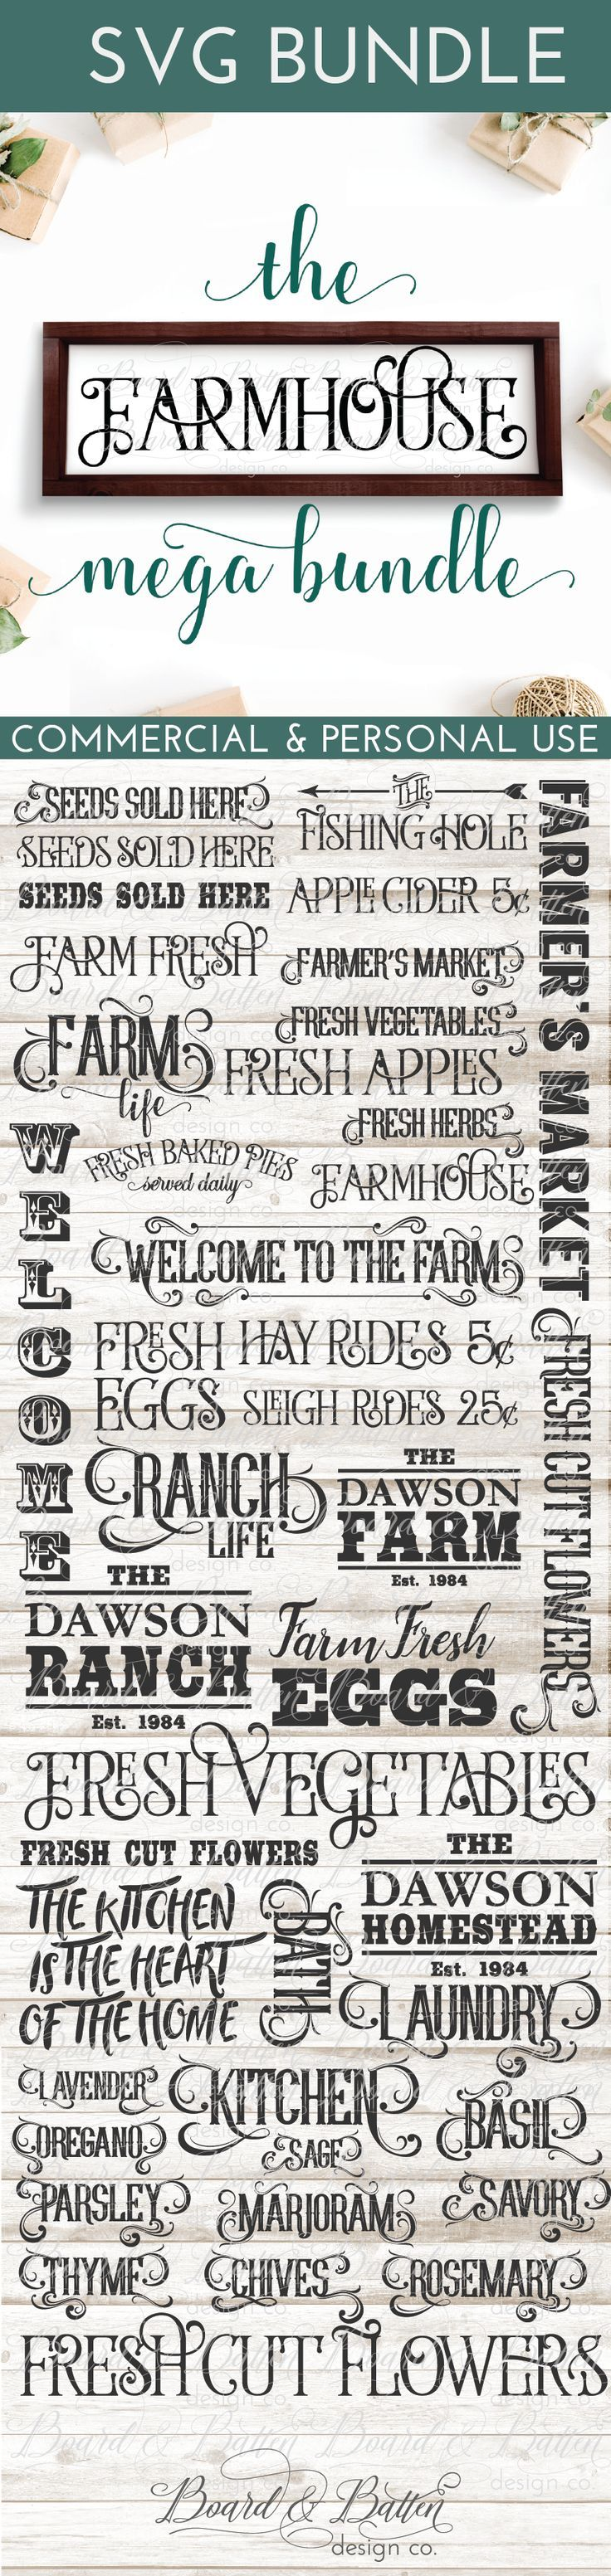 Love making farmhouse style decor with your Silhouette or Cricut? Grab this set of vintage farmhouse style SVGs today for a whole bunch of great project ideas and save over 60% while you're at it! With several different farmhouse styles, you're sure to find the perfect look for you. With commercial use license included, it's a great way to fill up a craft show booth, make gifts for everyone on your list, or just style your own home for the perfect farmhouse look!